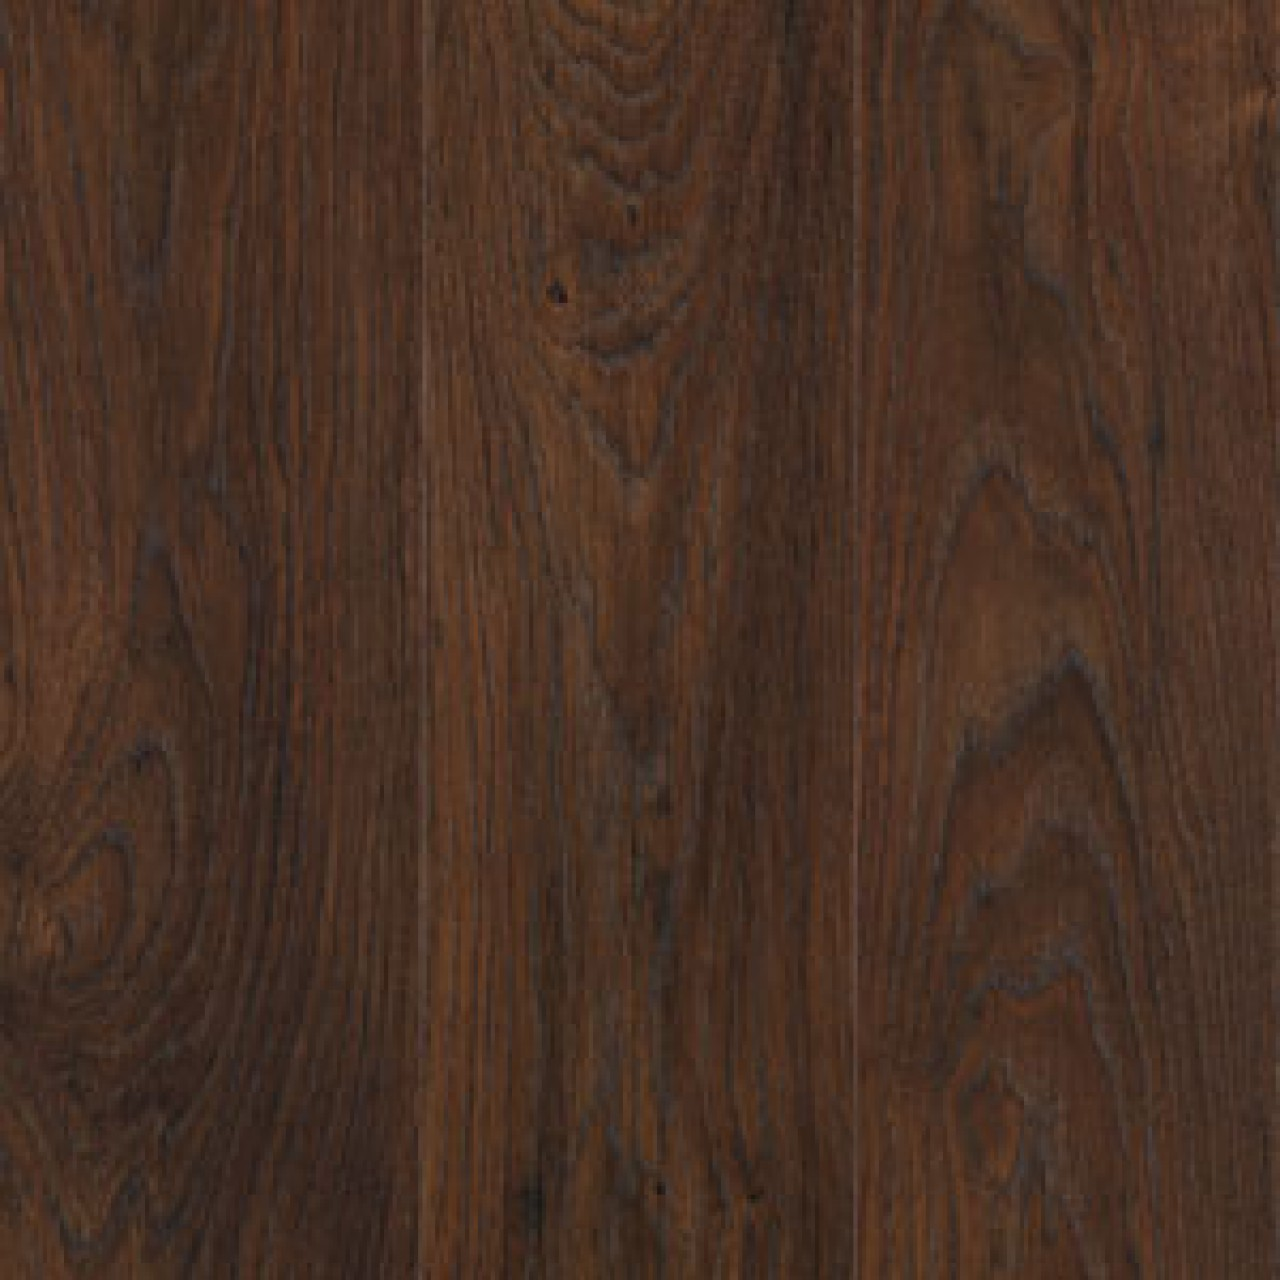 Laminate flooring carpet and laminate flooring for Carpet and laminate flooring